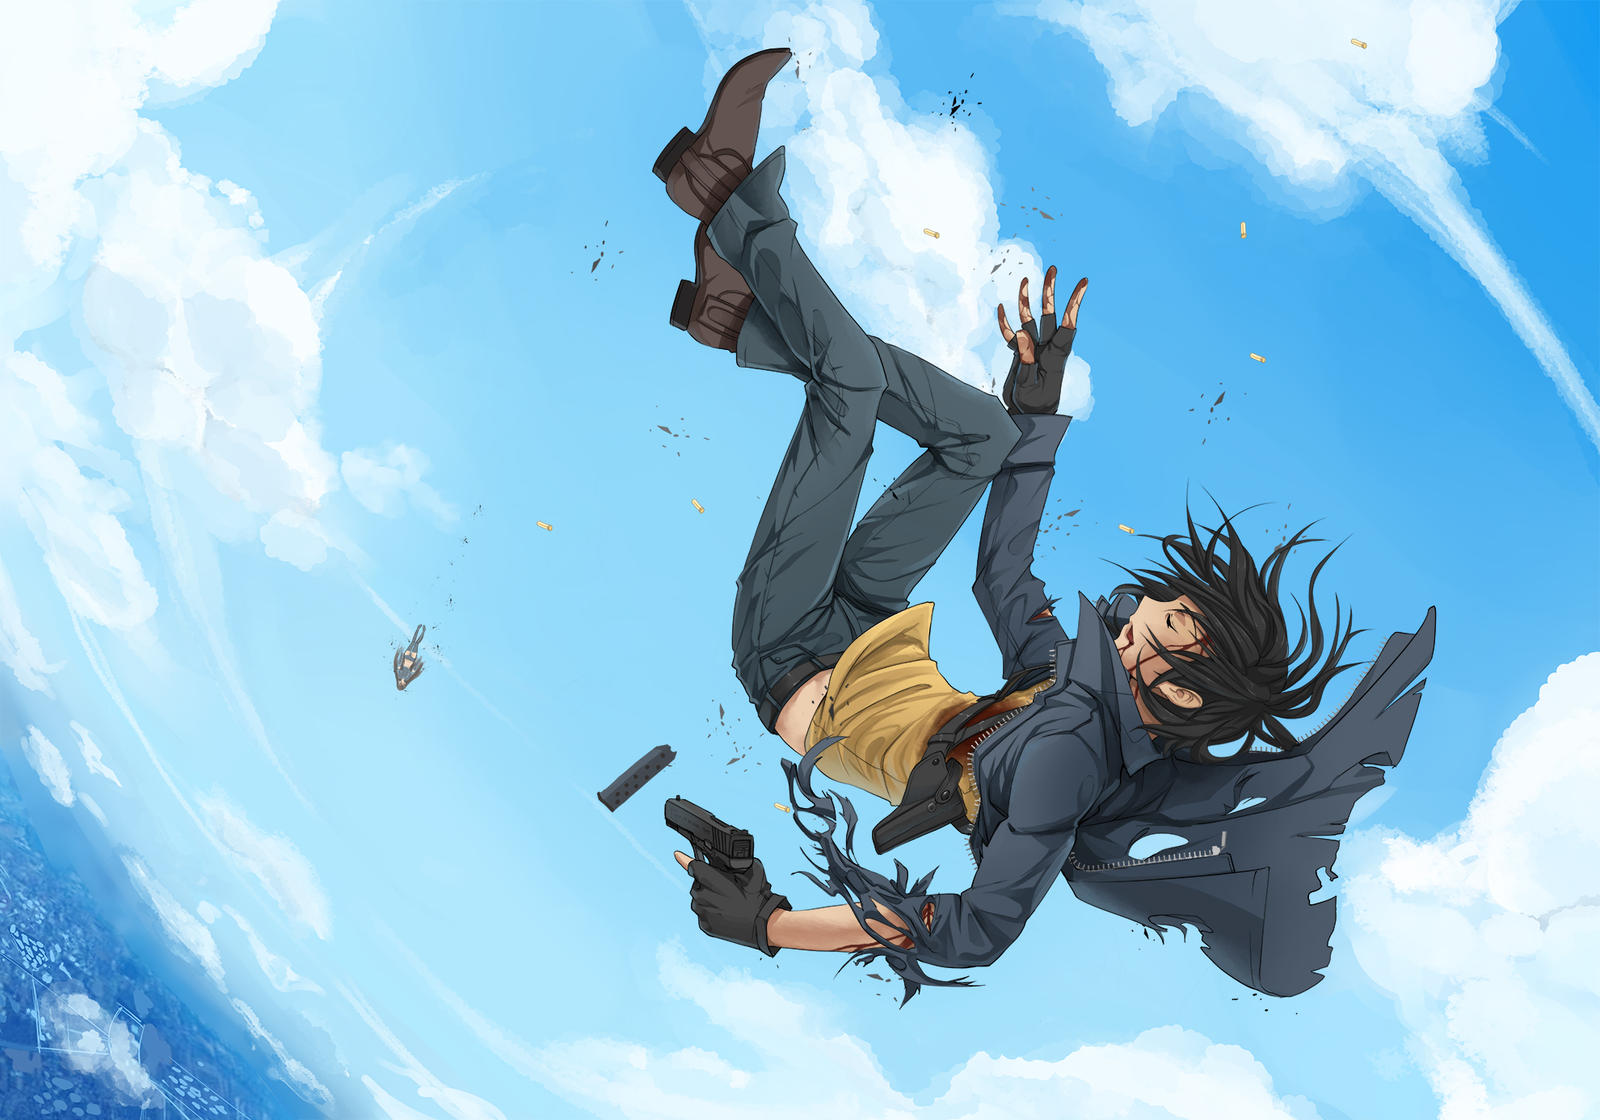 Anime Girl Falling From Sky Falling from the skyes byAnime Girl Falling Down From Sky